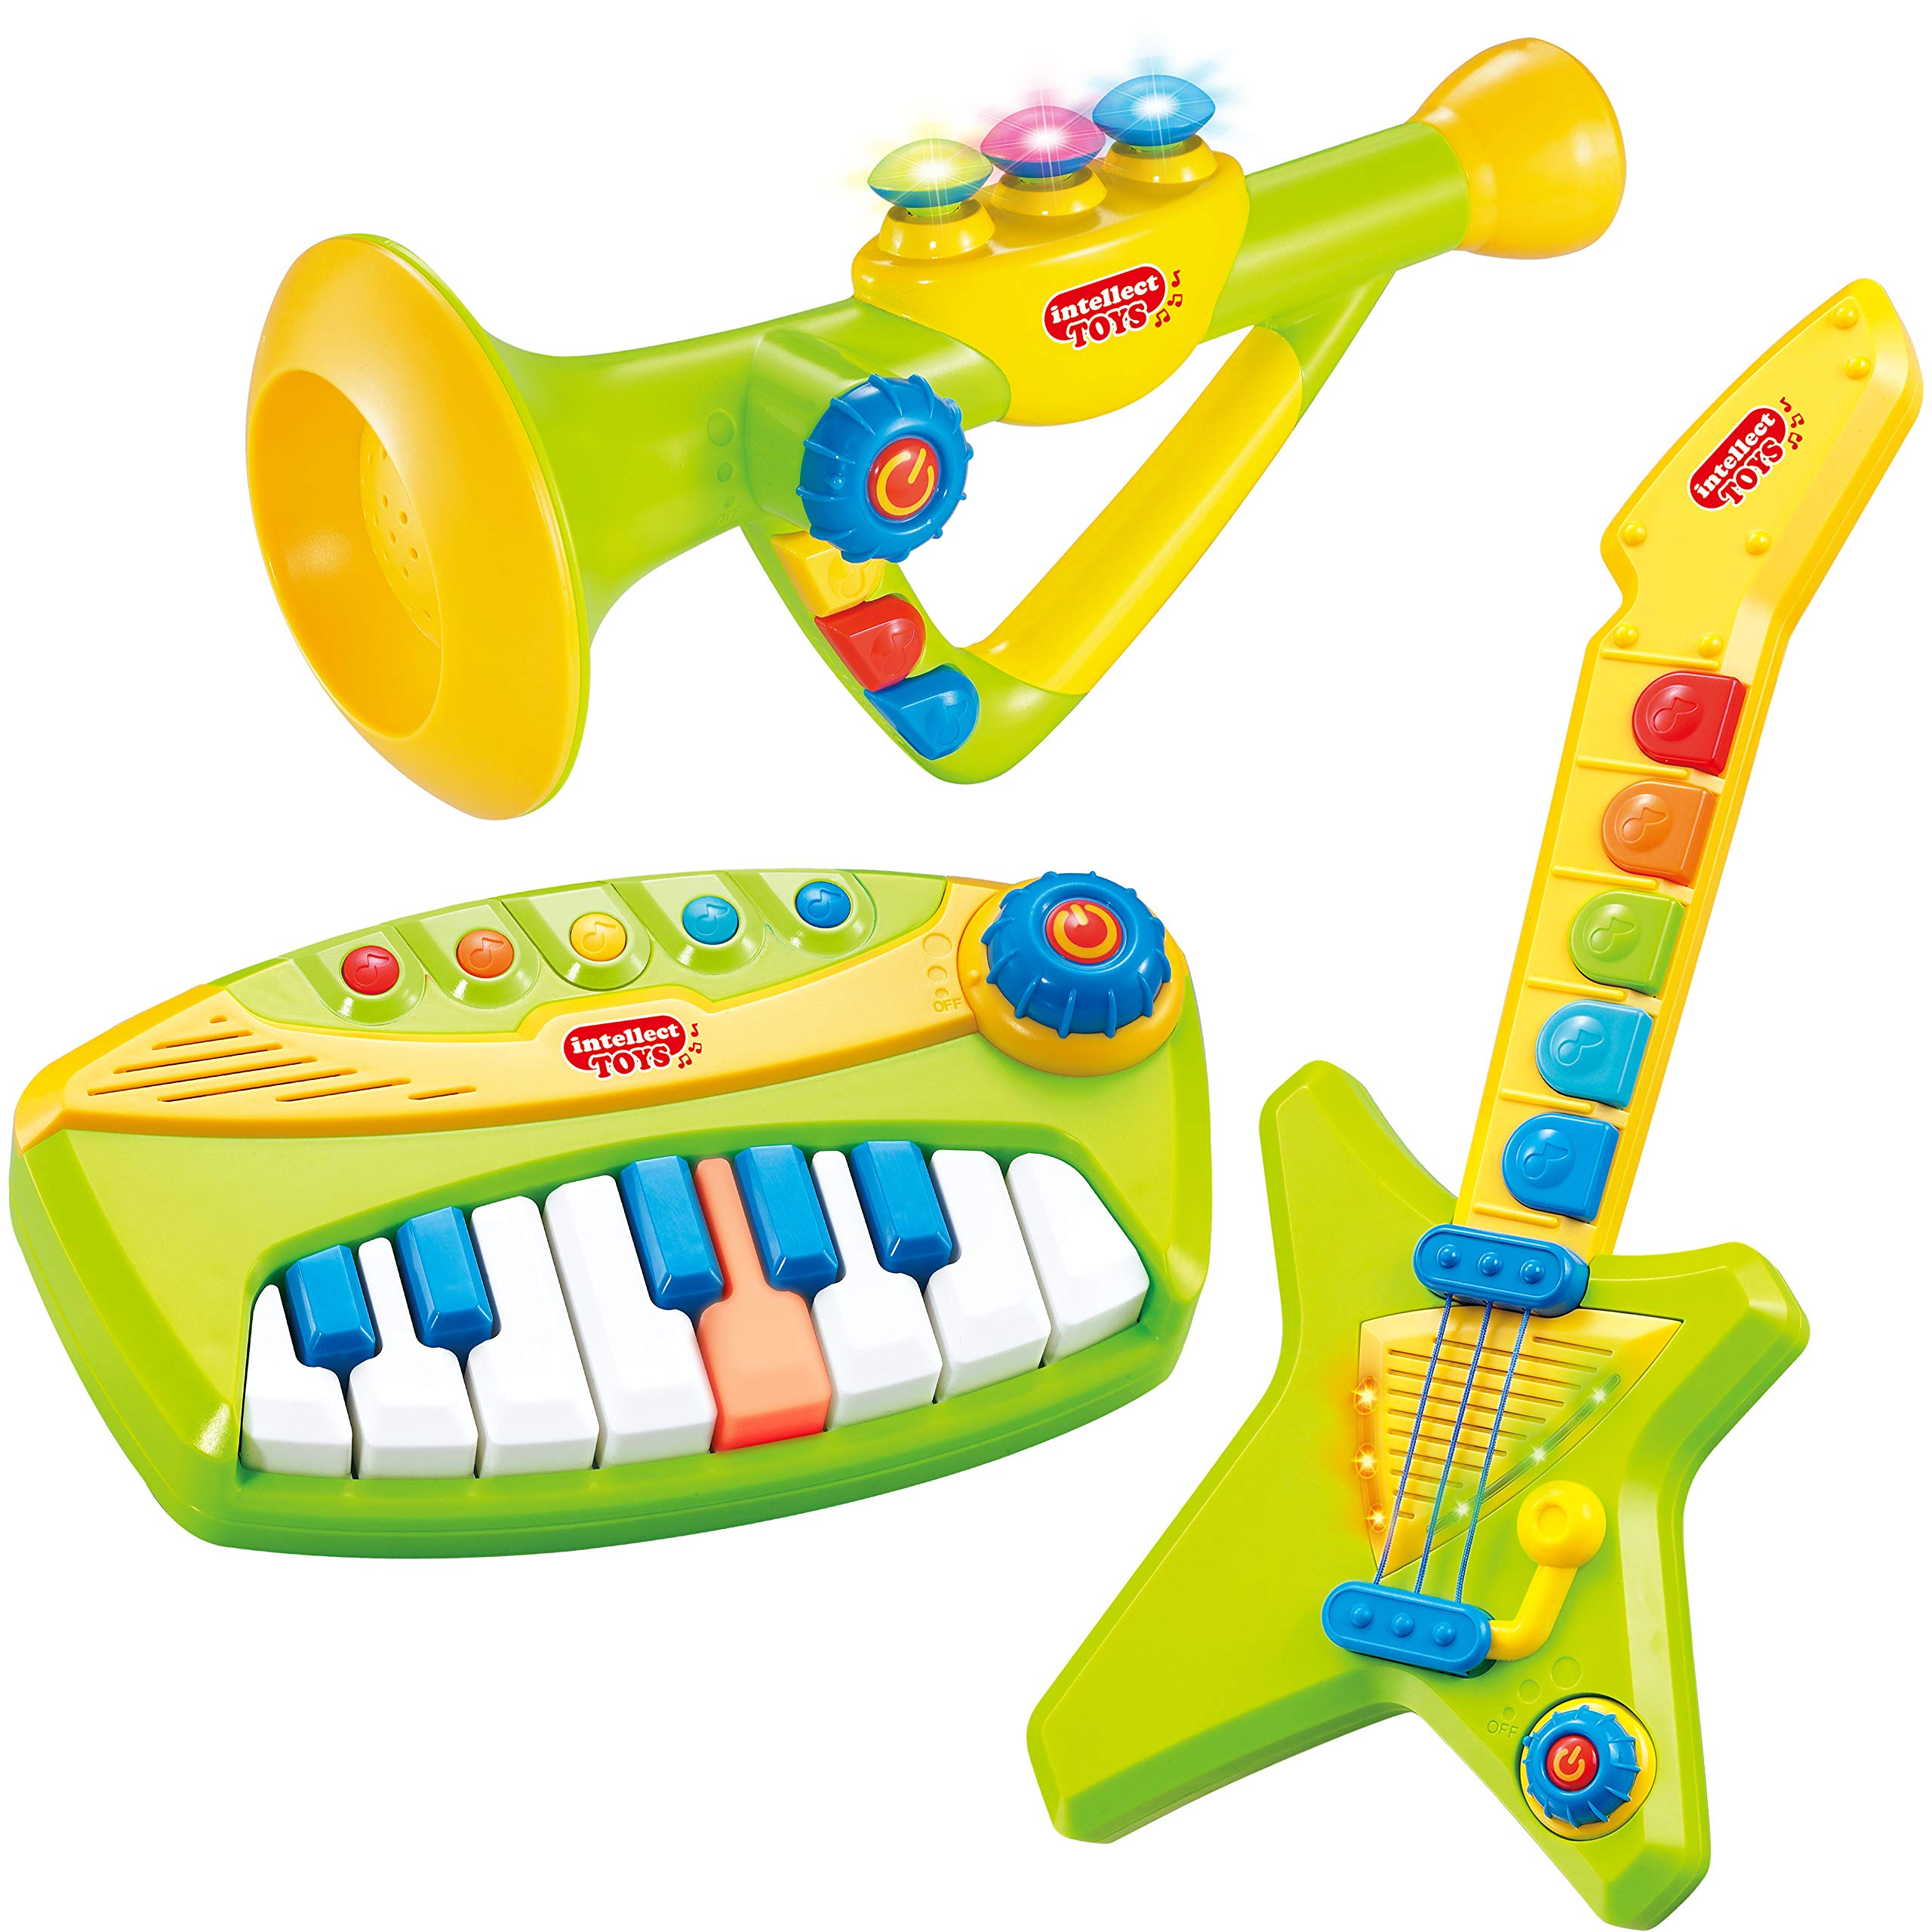 Top Right Toys 3 in 1 Musical Instrument Set Piano, Guitar and Trumpet Combo for Toddlers- with Sound, Lights and Popular Pre-Recorded Songs by Top Right Toys